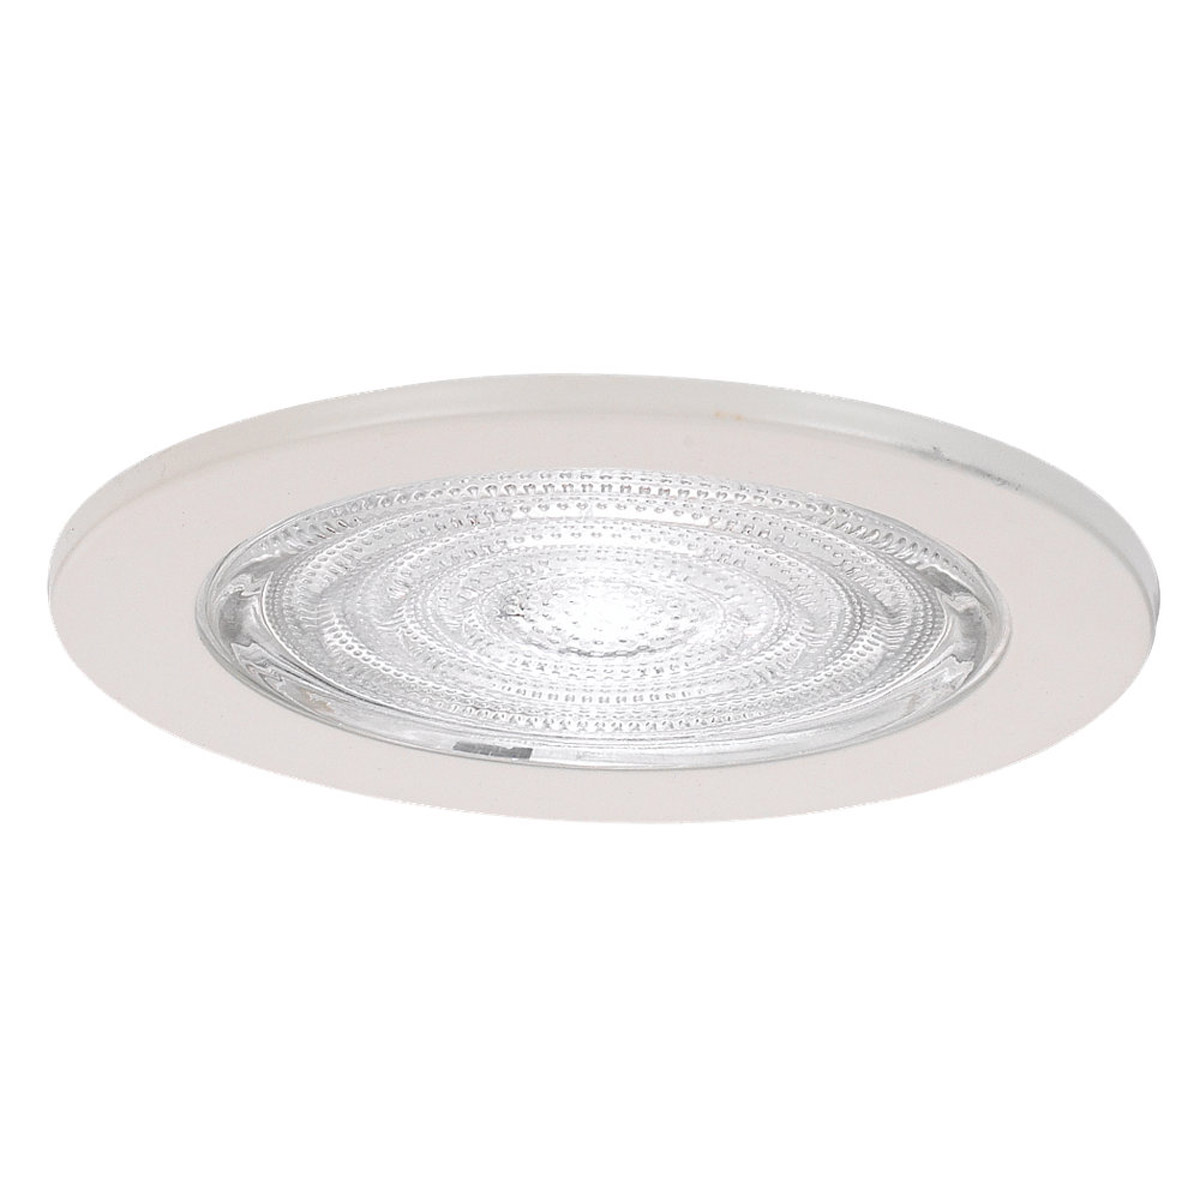 Sea Gull Lighting Signature Recessed Trim Only in White 1153AT-15